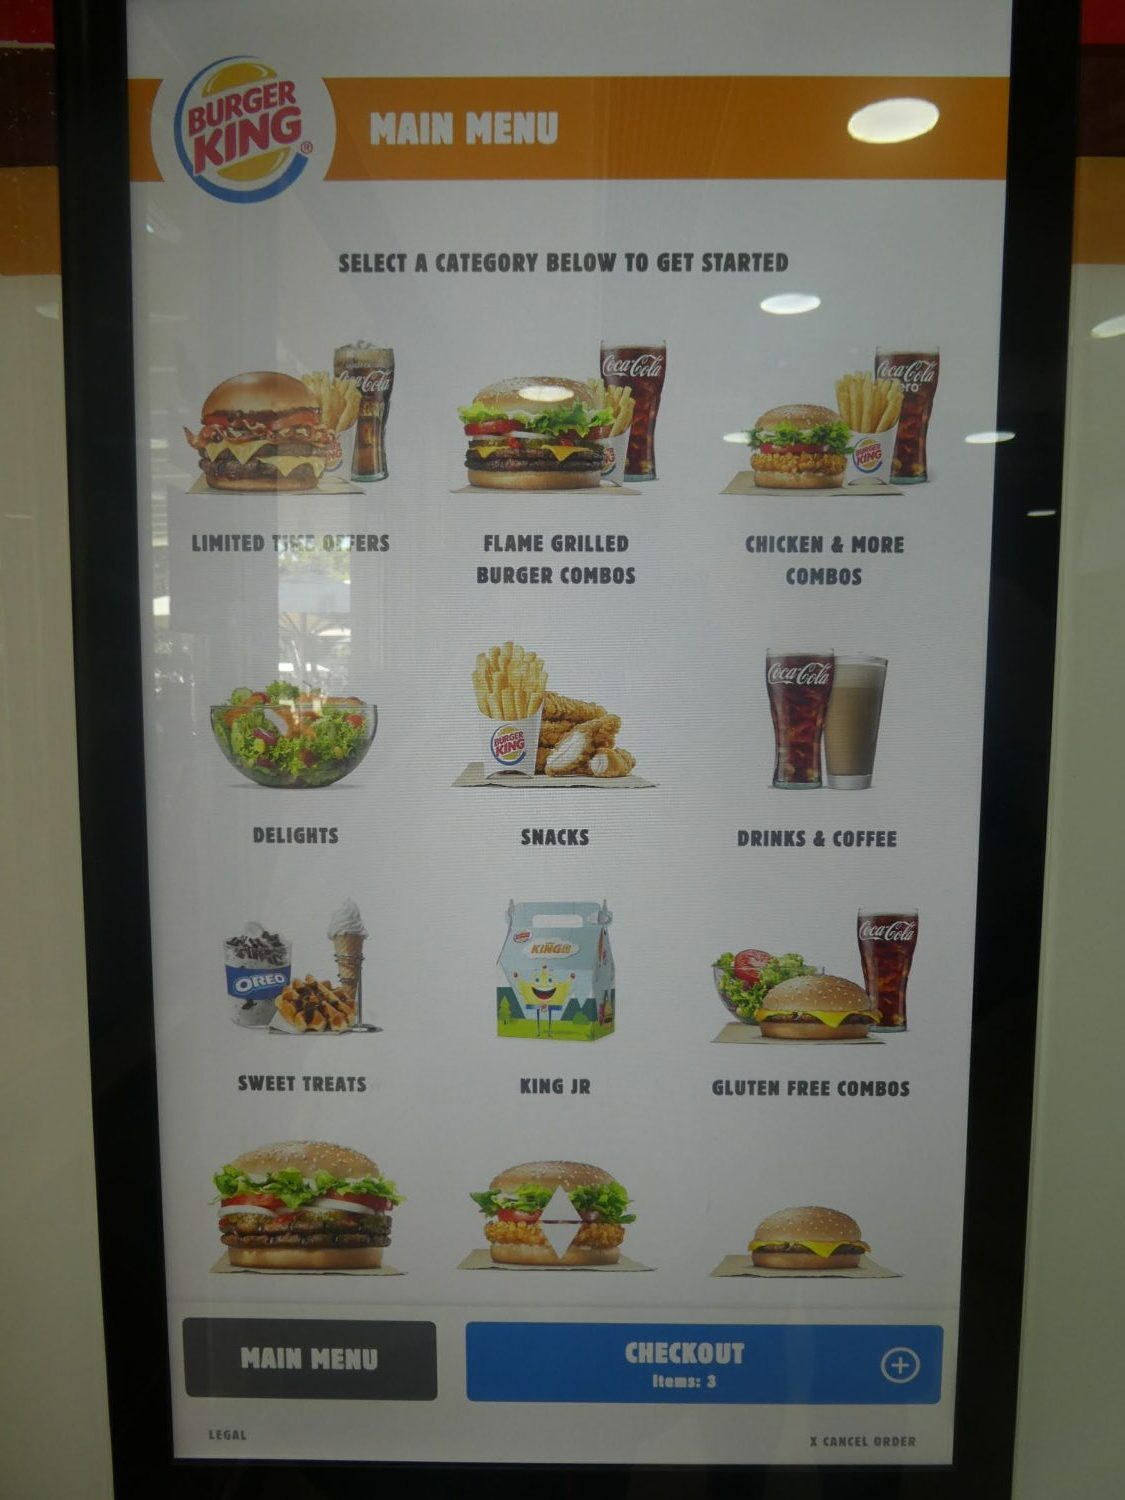 Spanish Burger King Menu with Gluten Free Options